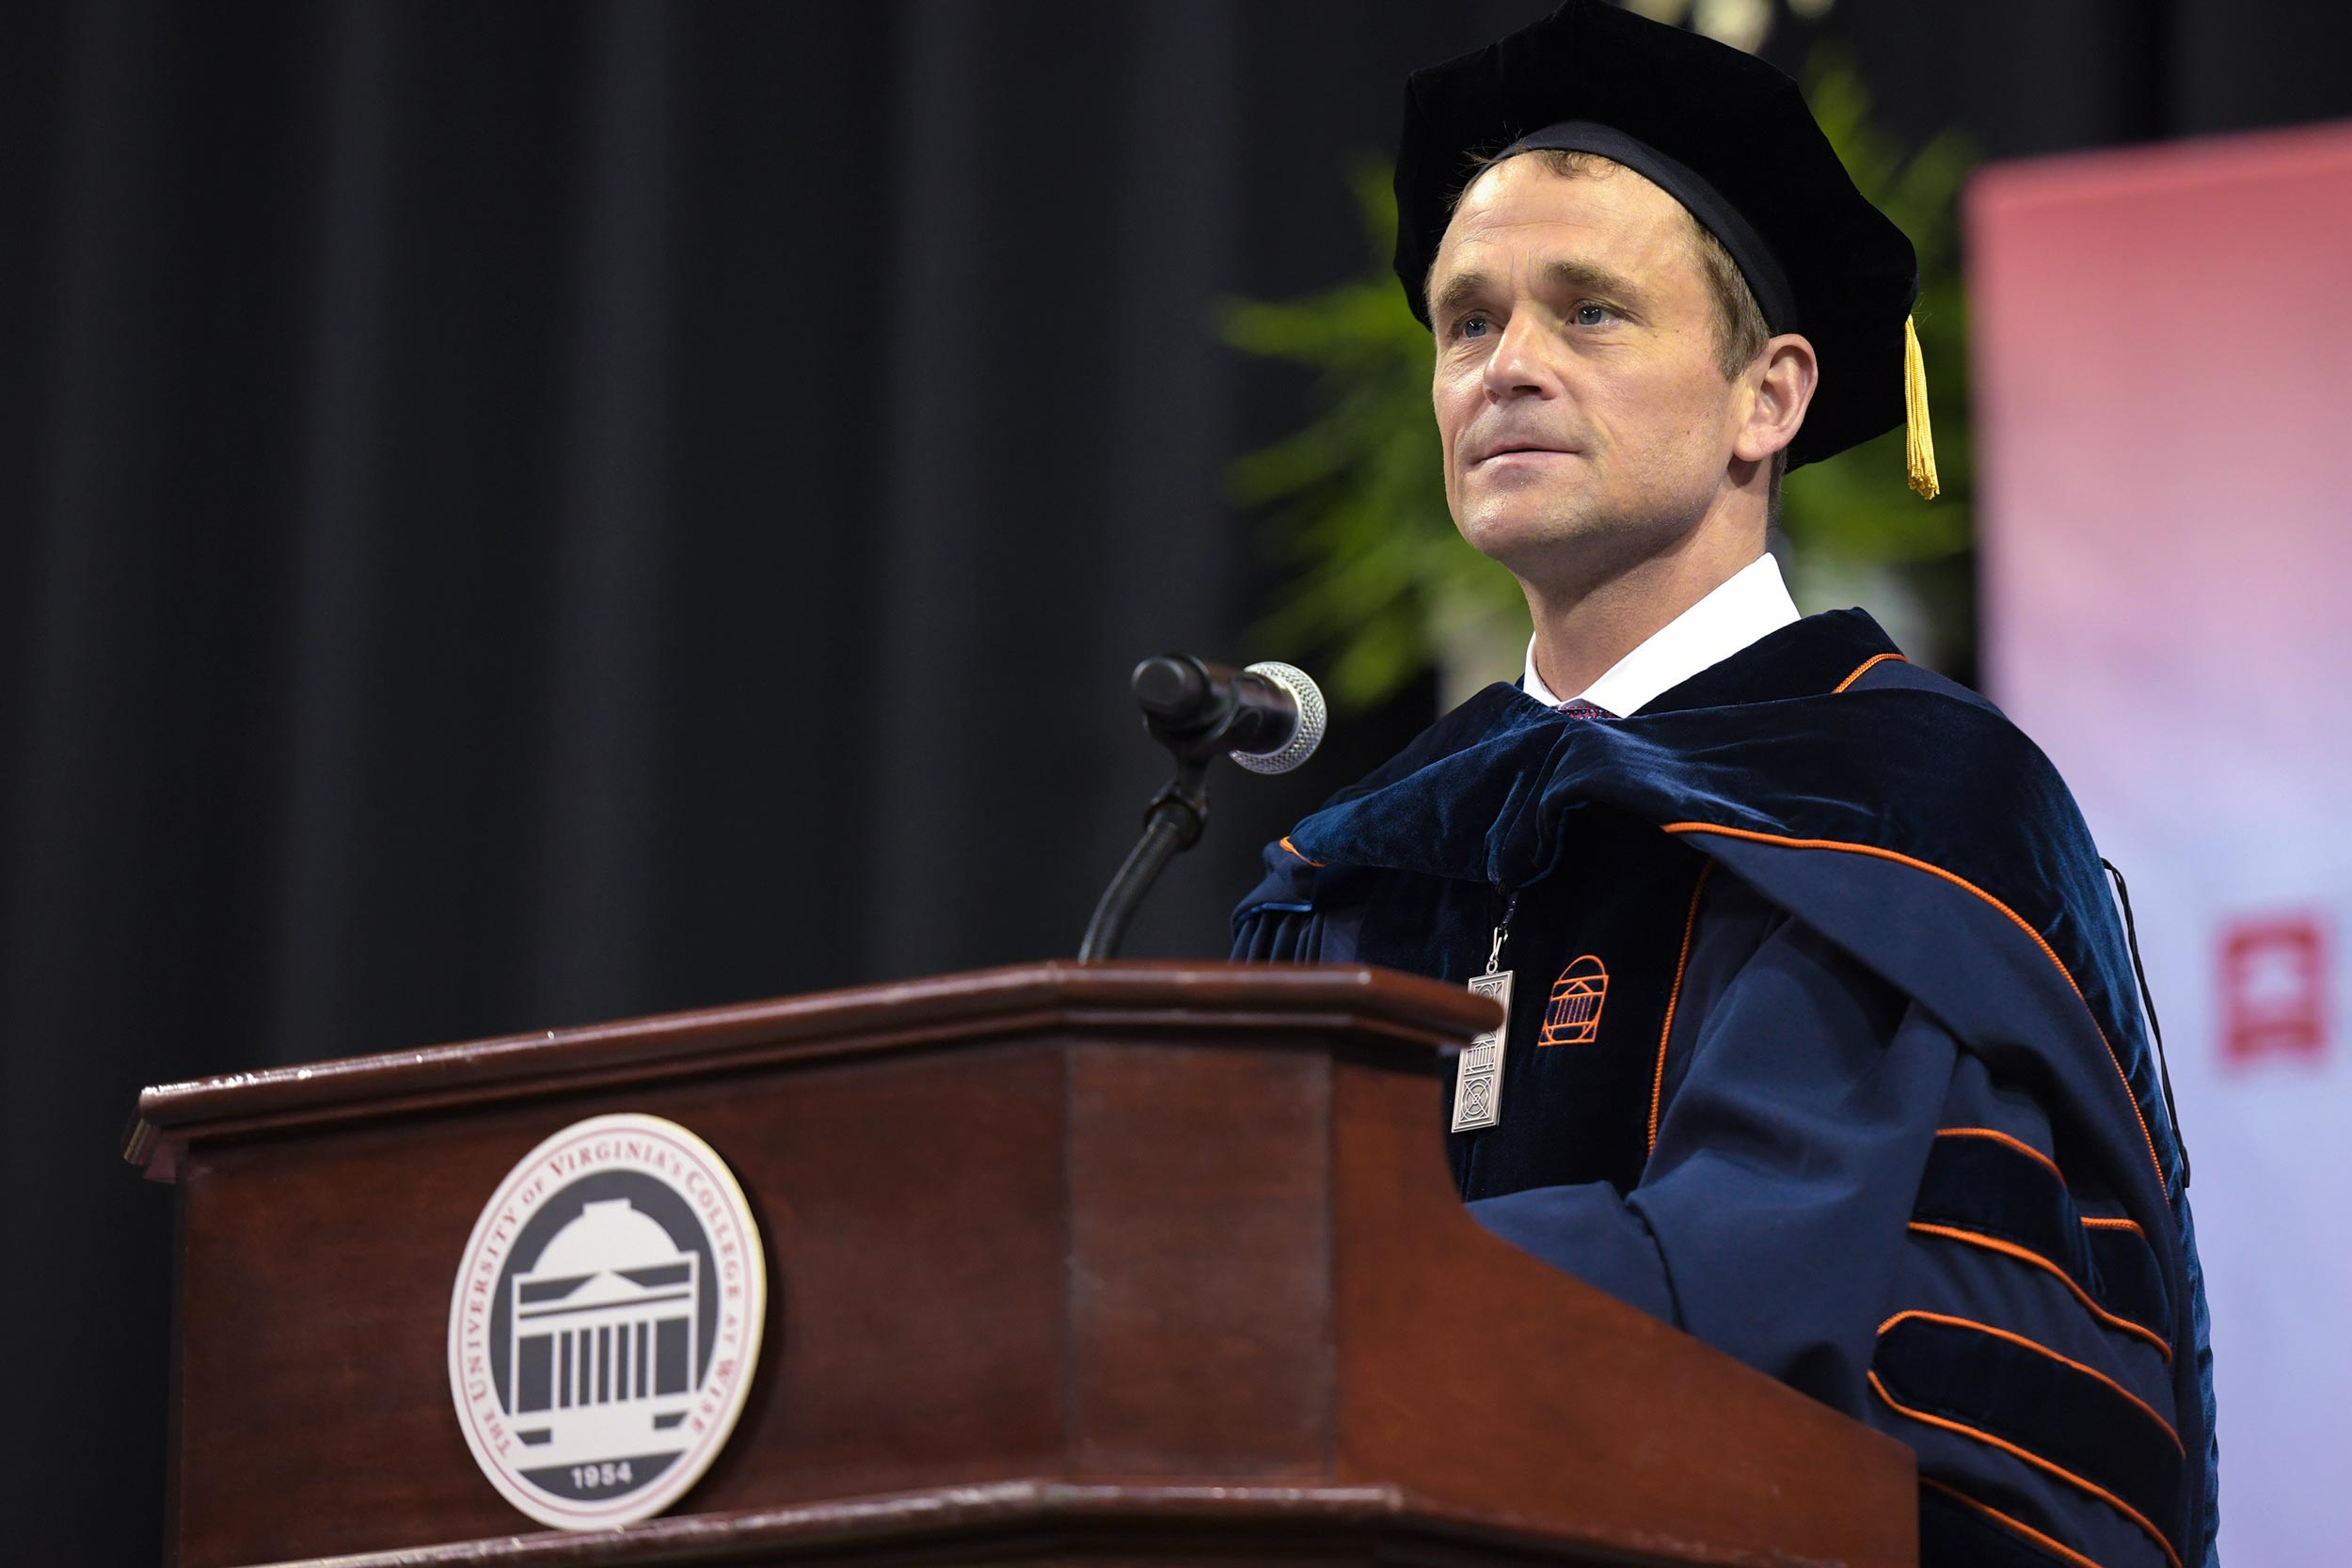 UVA President Jim Ryan applied themes from the Cavalier basketball team's national championship run to the journeys of UVA-Wise graduates in his graduation address last week.